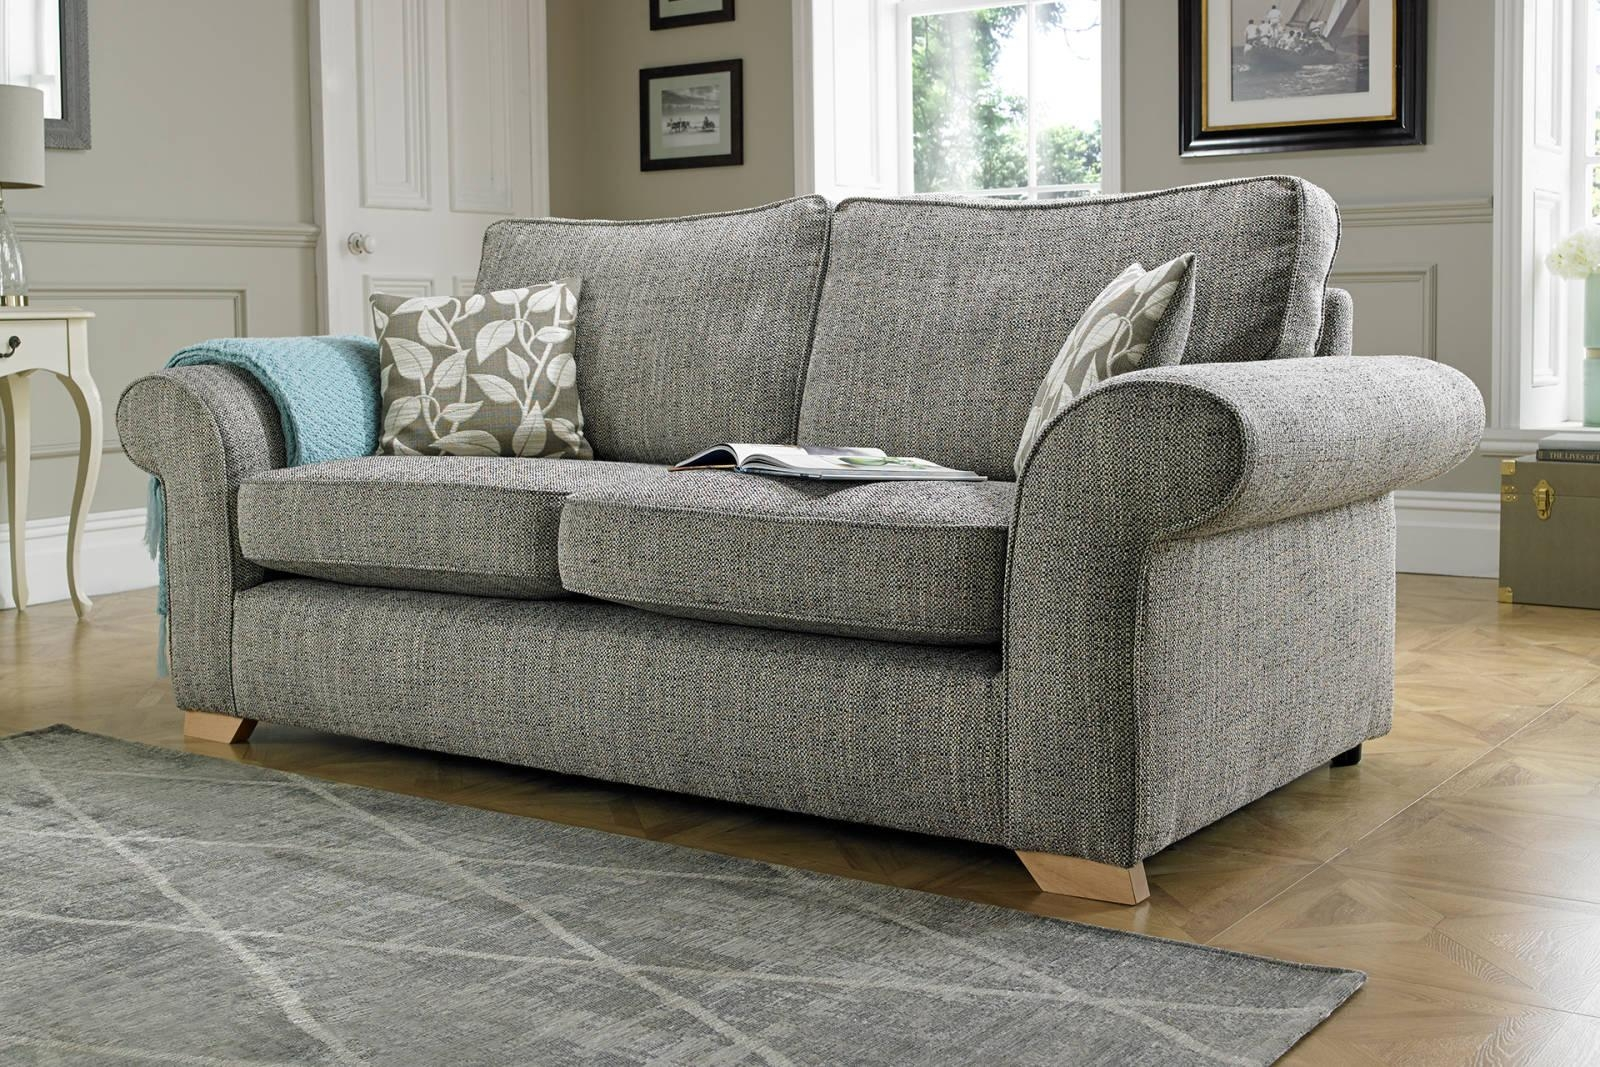 Ashford | Sofology Pertaining To Ashford Sofas (Image 2 of 20)